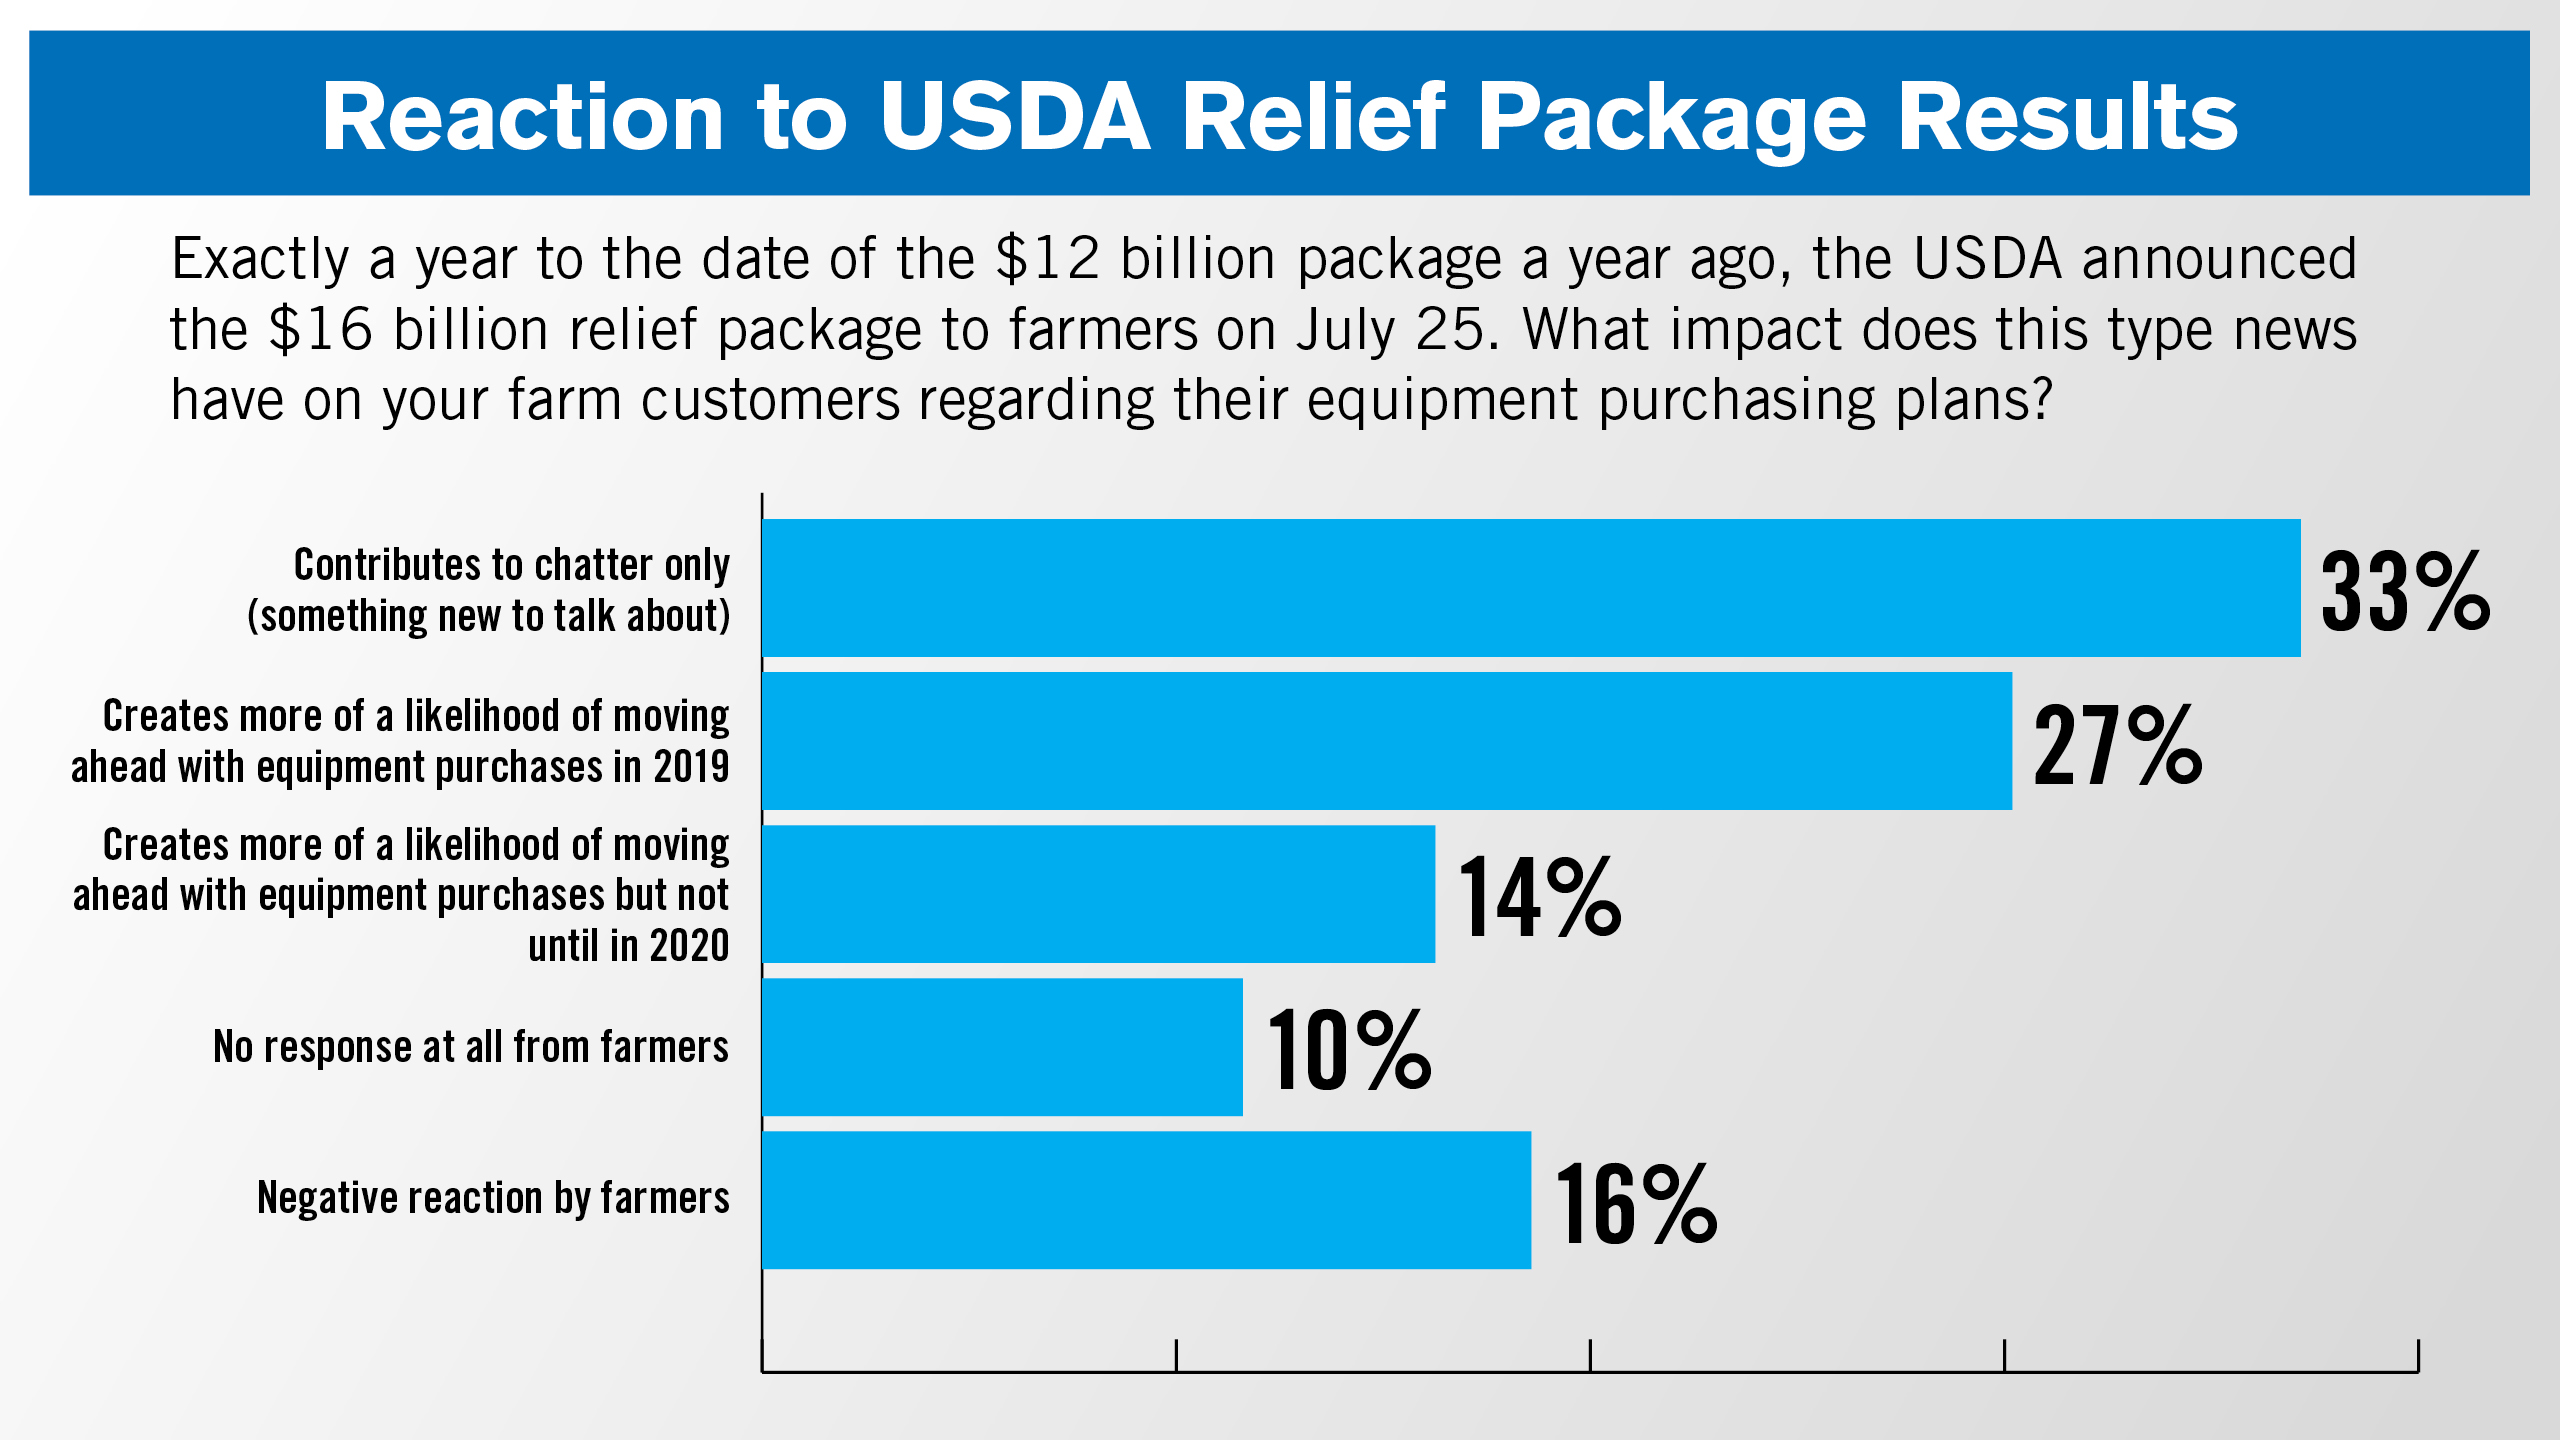 Reaction-to-USDA-Relief-Package-Results_Bar-Grapgh.jpg